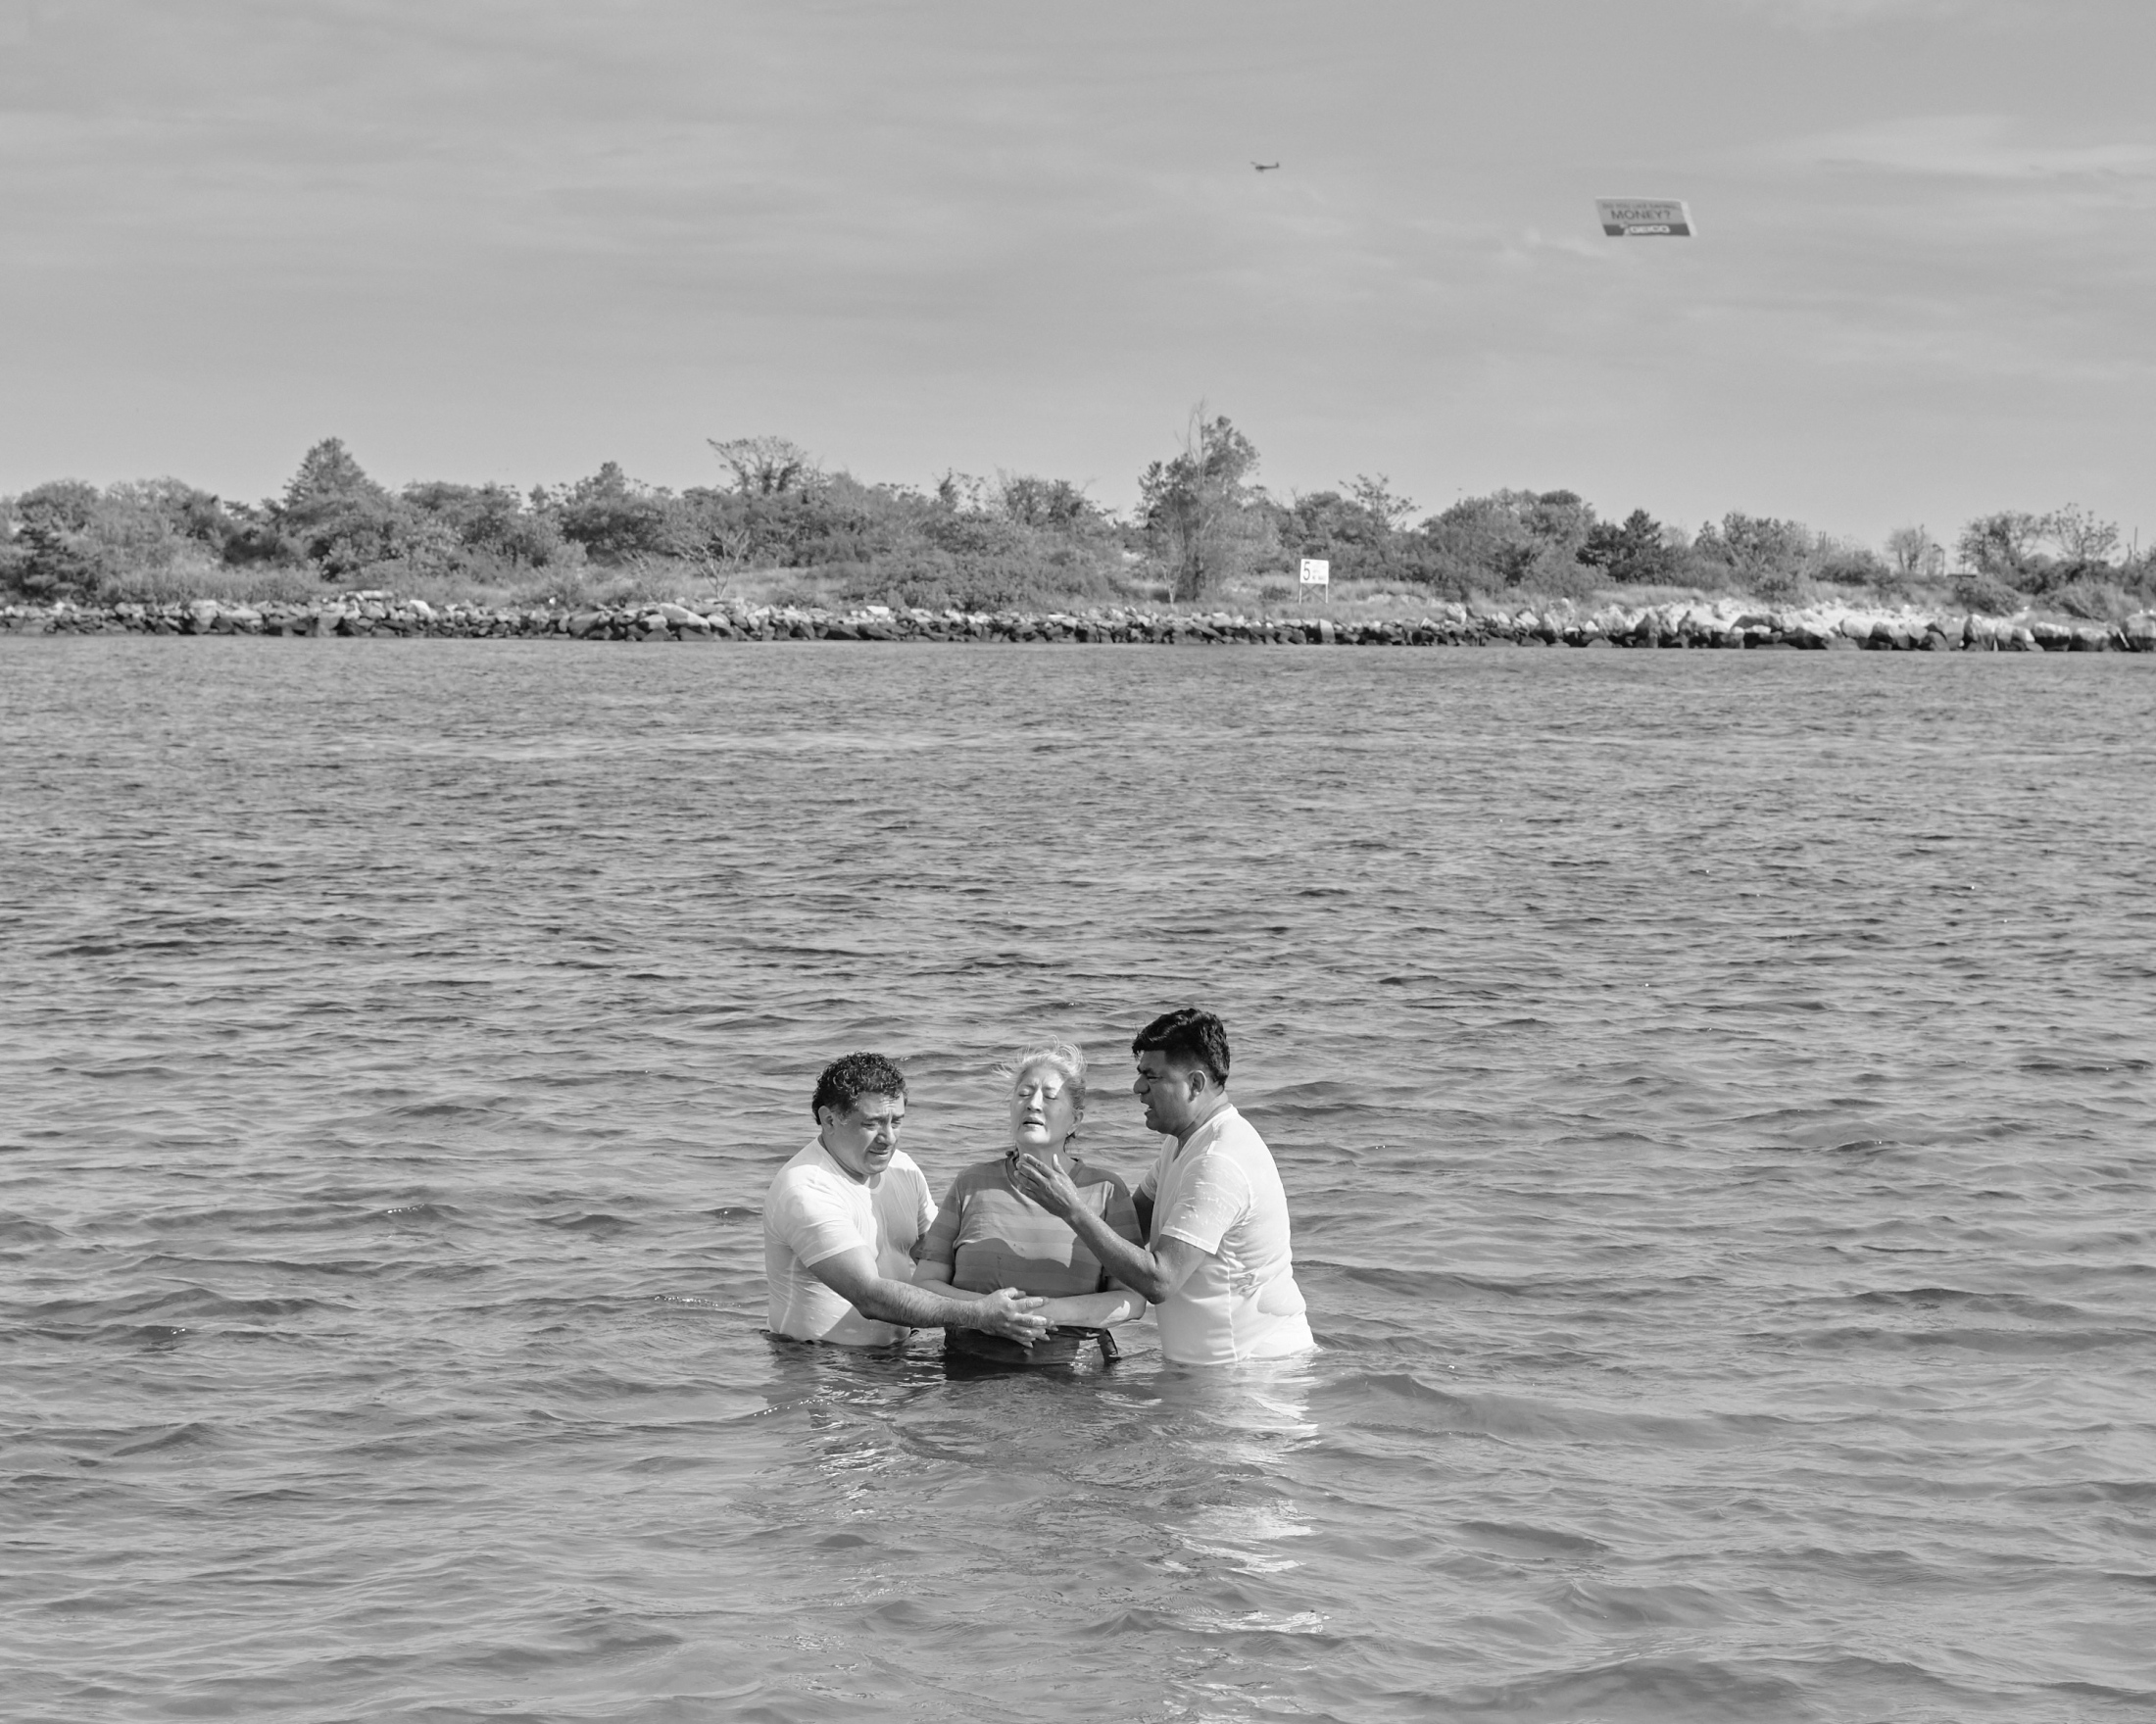 A group of evangelical celebrates a baptism in a Sunday morning, over the Reynolds Channel in Far Rockaway. New York, 2019.